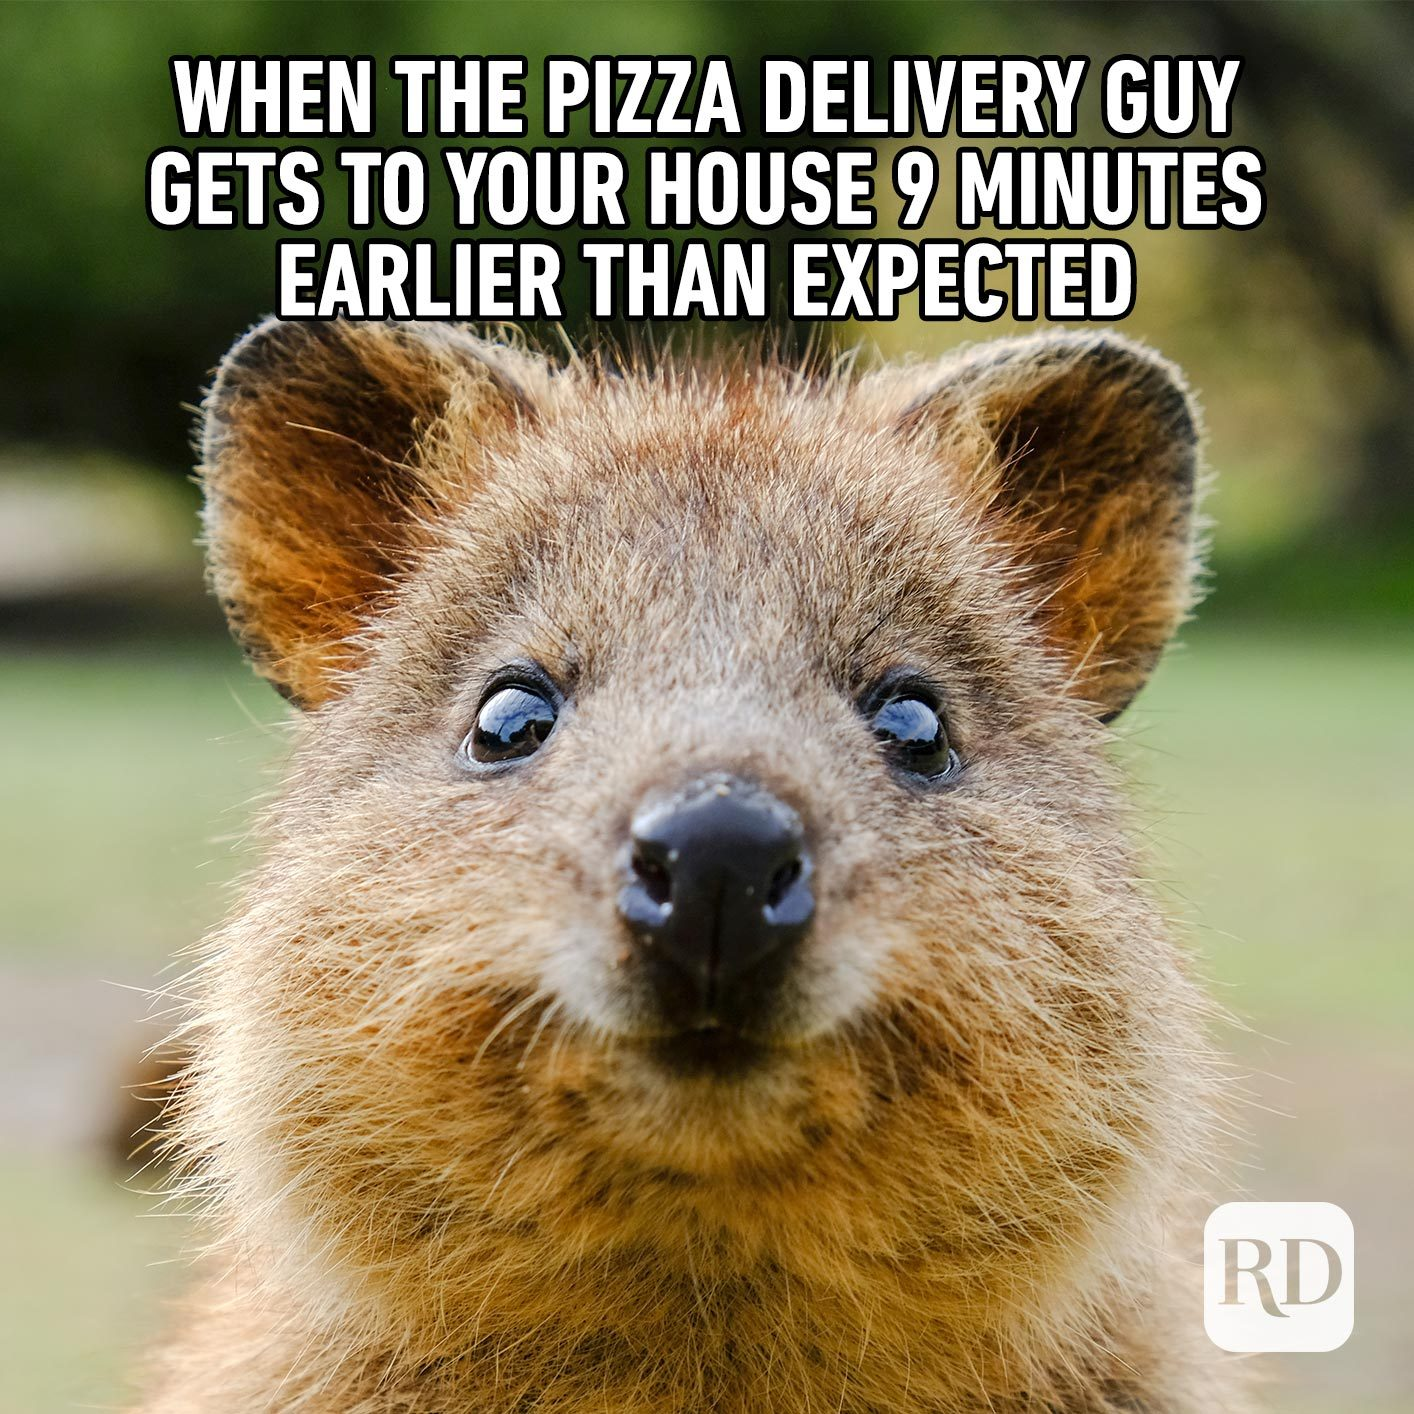 Pizza's here